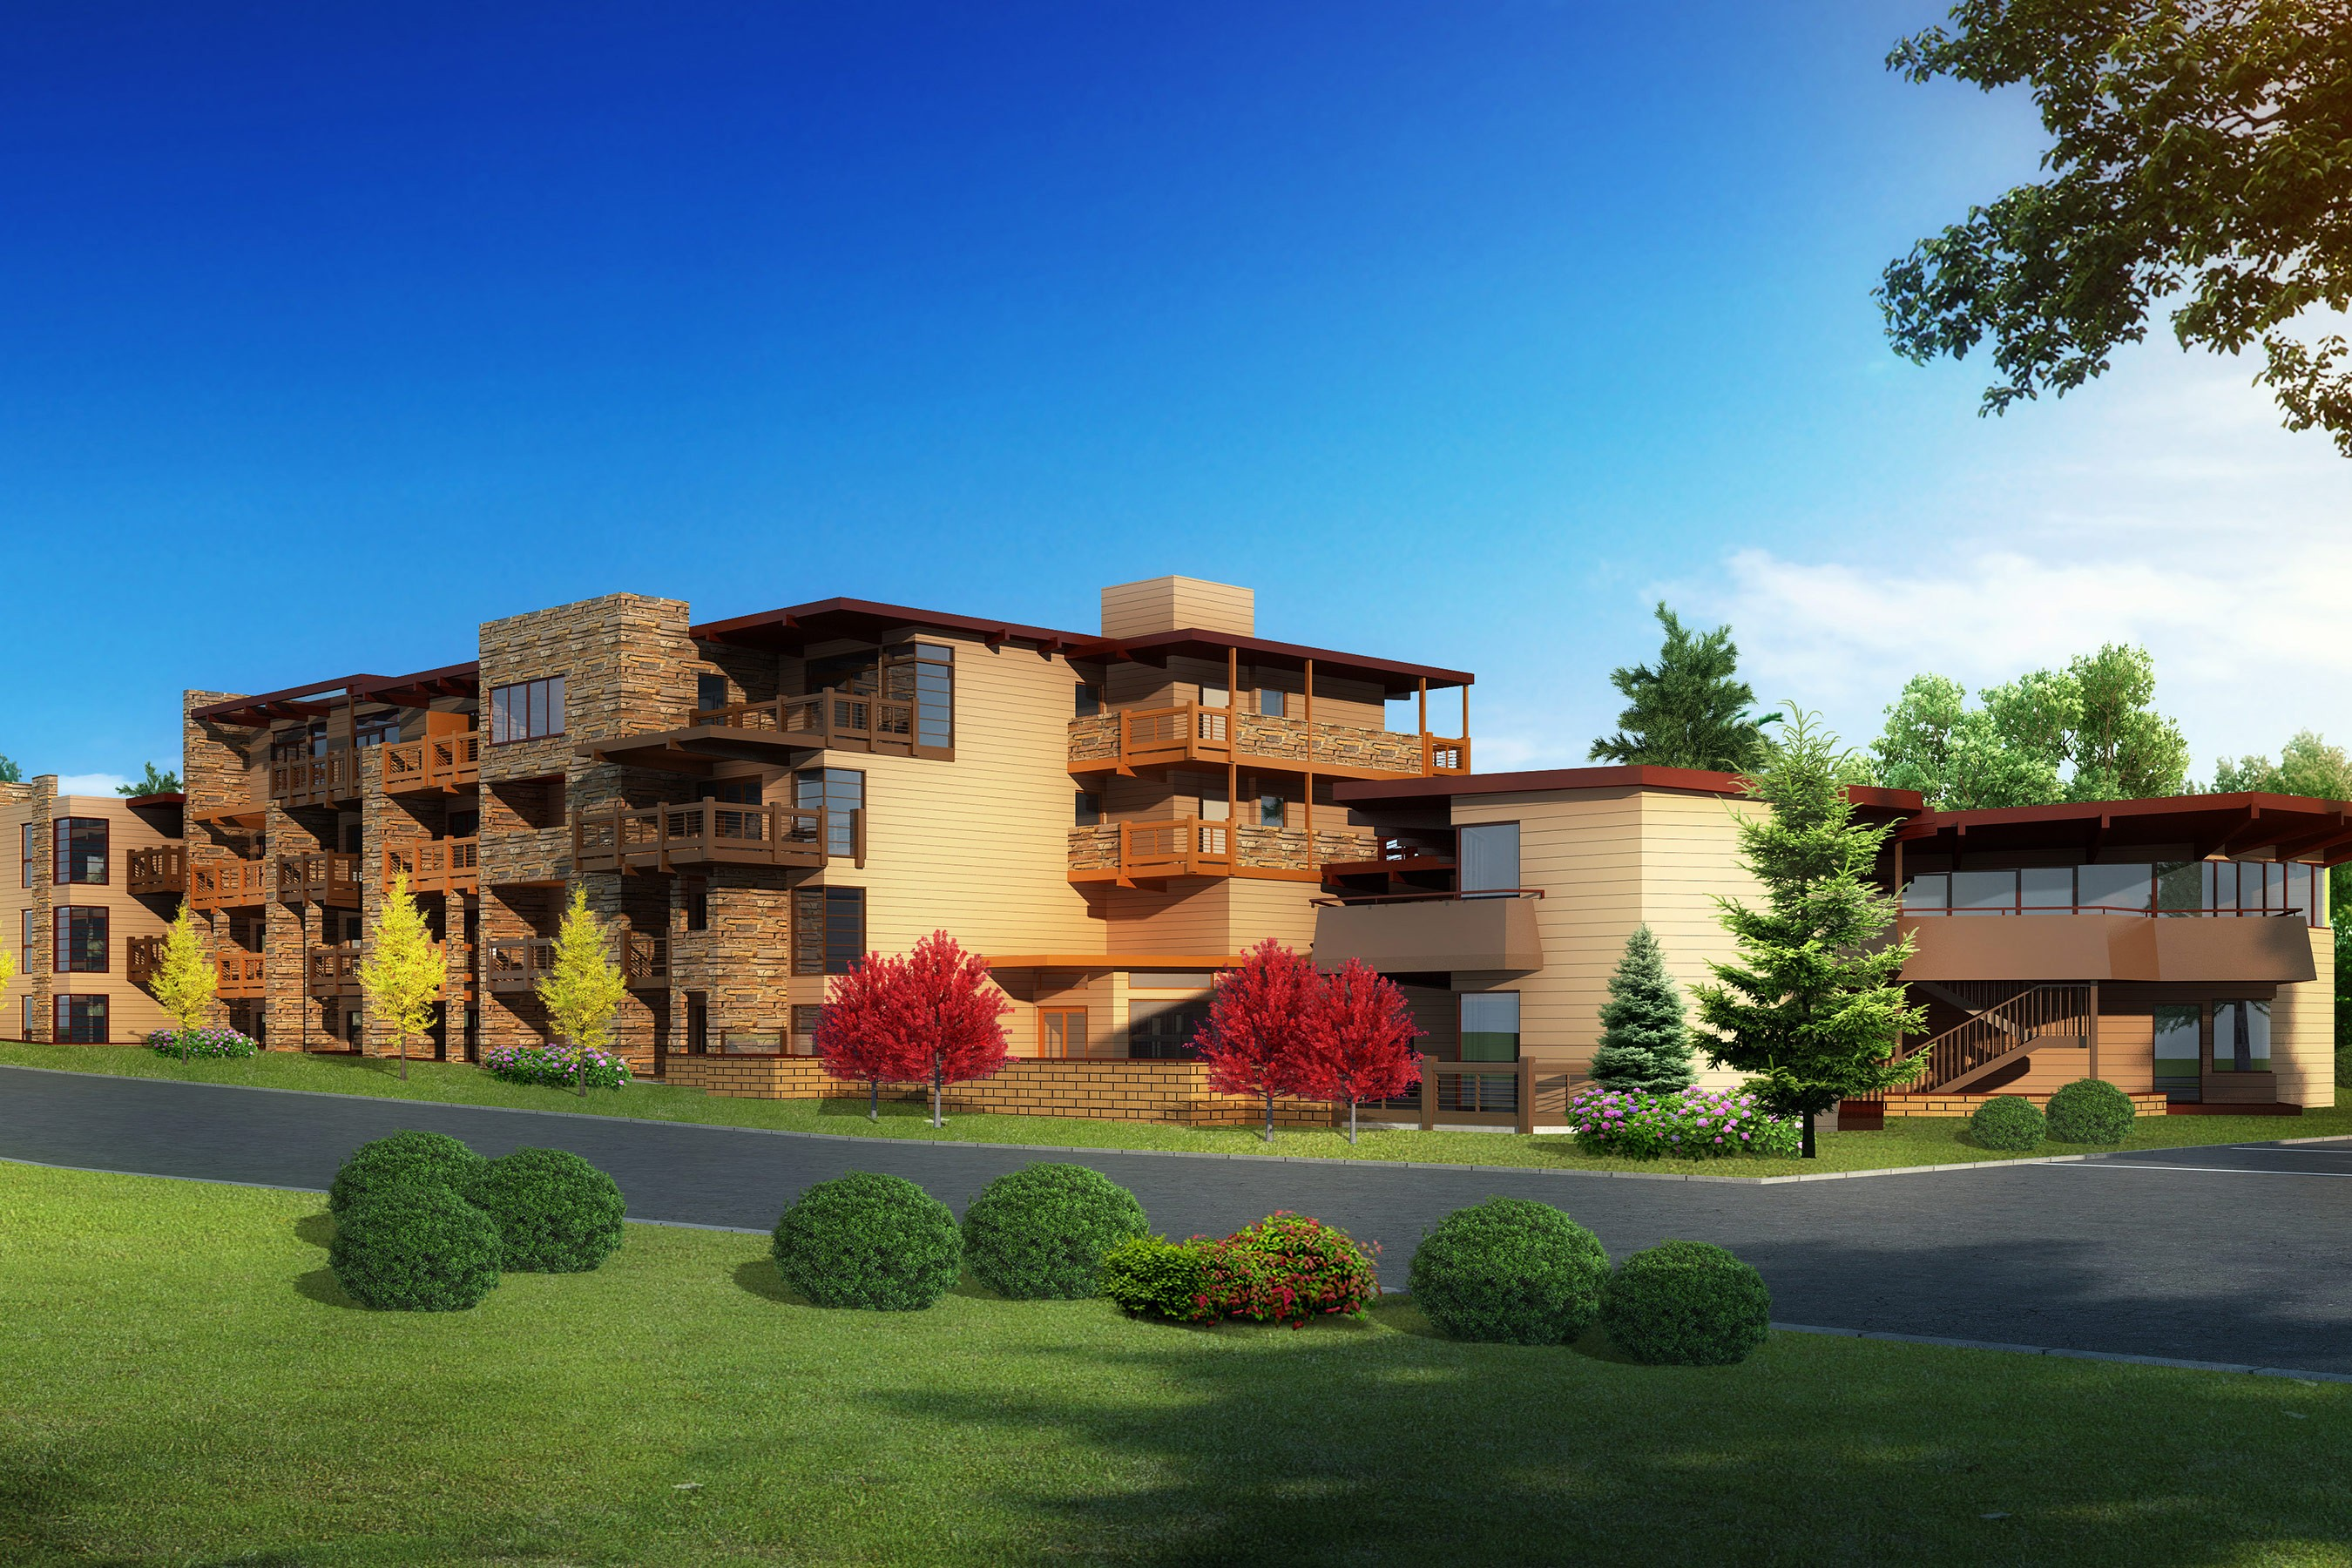 Condominium for Sale at Boomerang Lodge 500 W. Hopkins Avenue Unit 115 Aspen, Colorado, 81611 United States